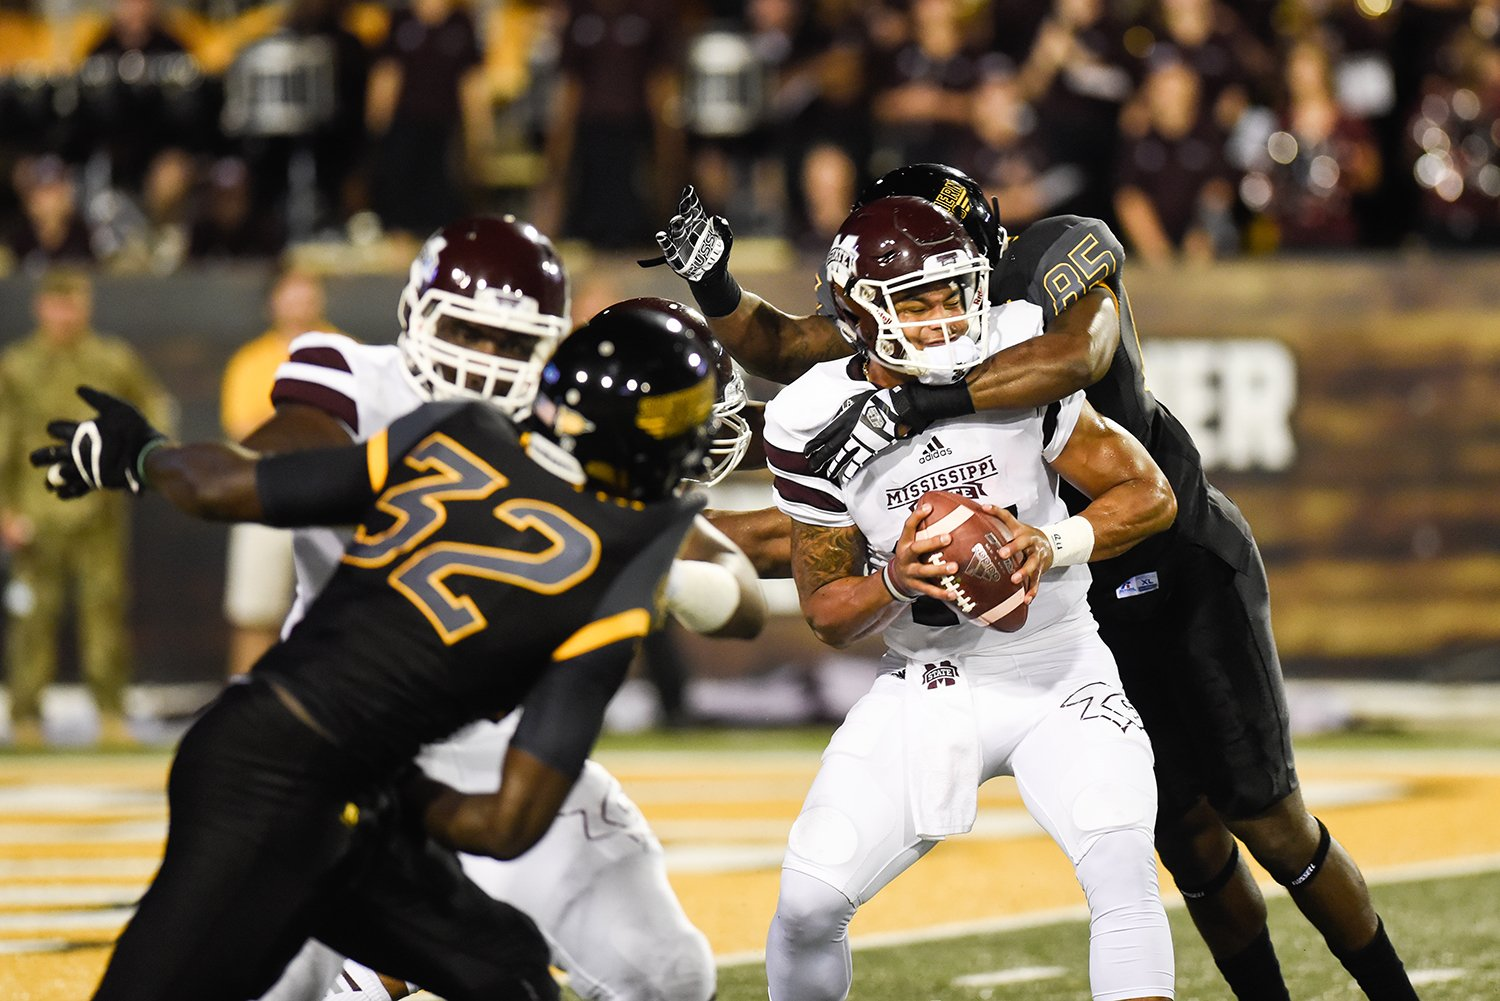 Image 2015 Southern Miss Vs Mississippi State Download 1500x1001